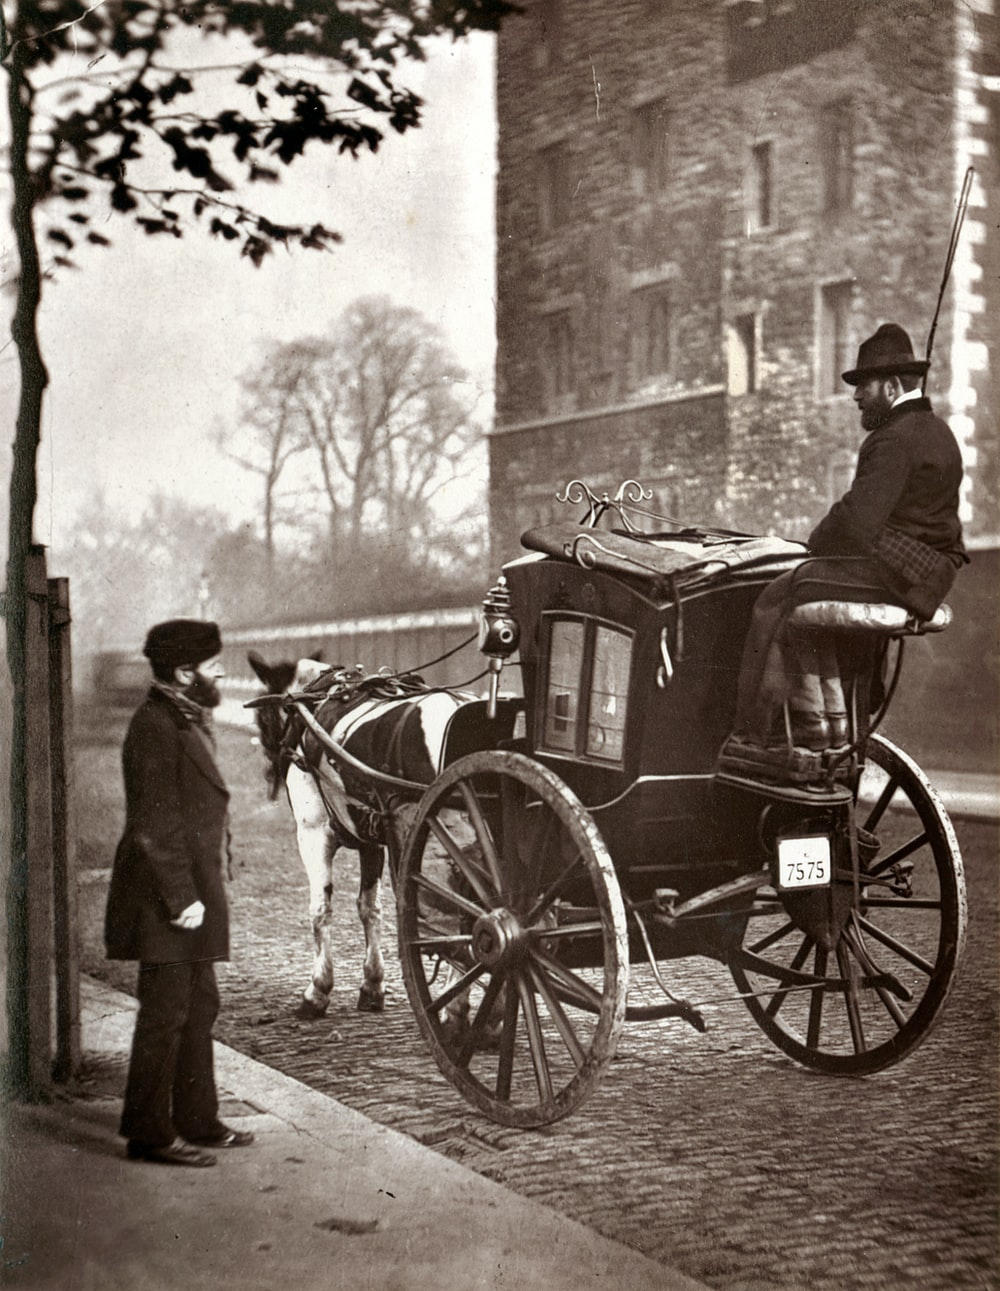 man in black coat standing beside horse carriage in grayscale photography